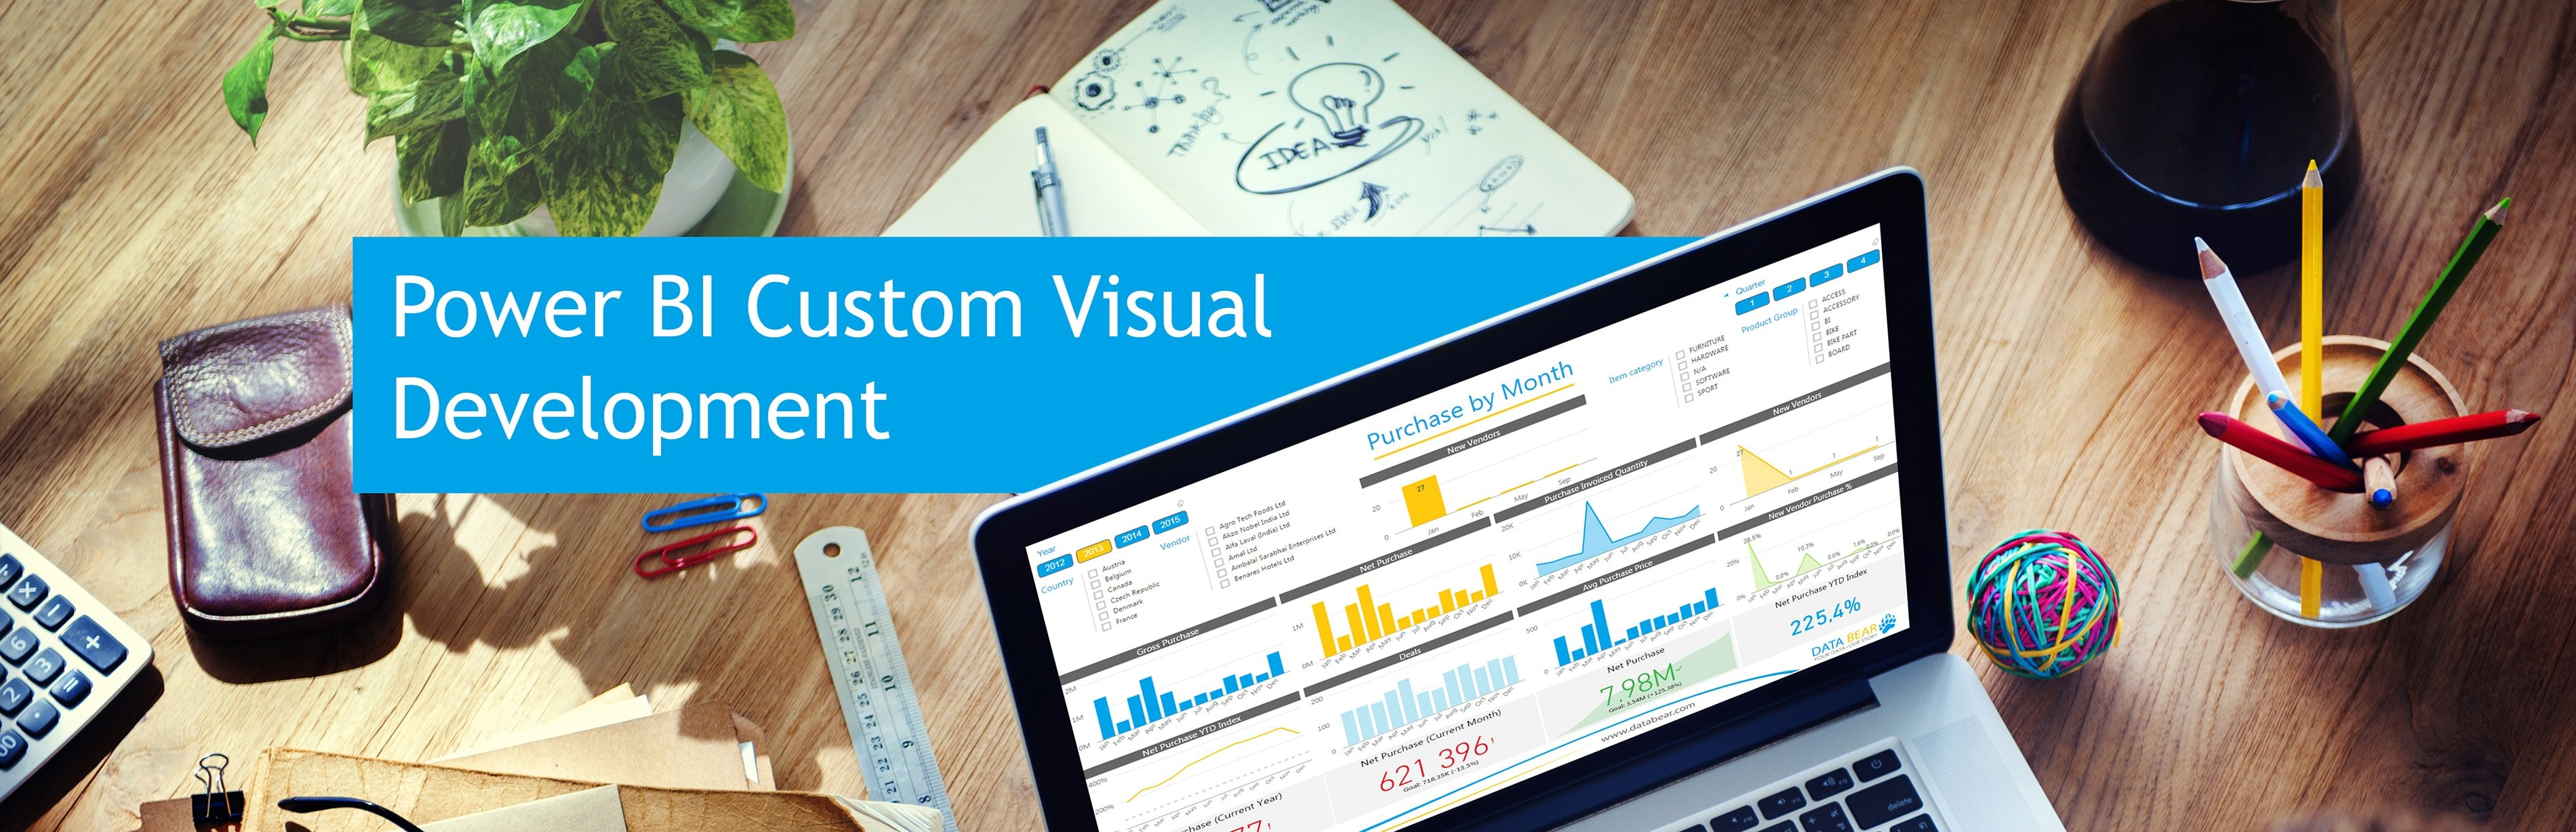 Data Bear Power BI custom visuals banner